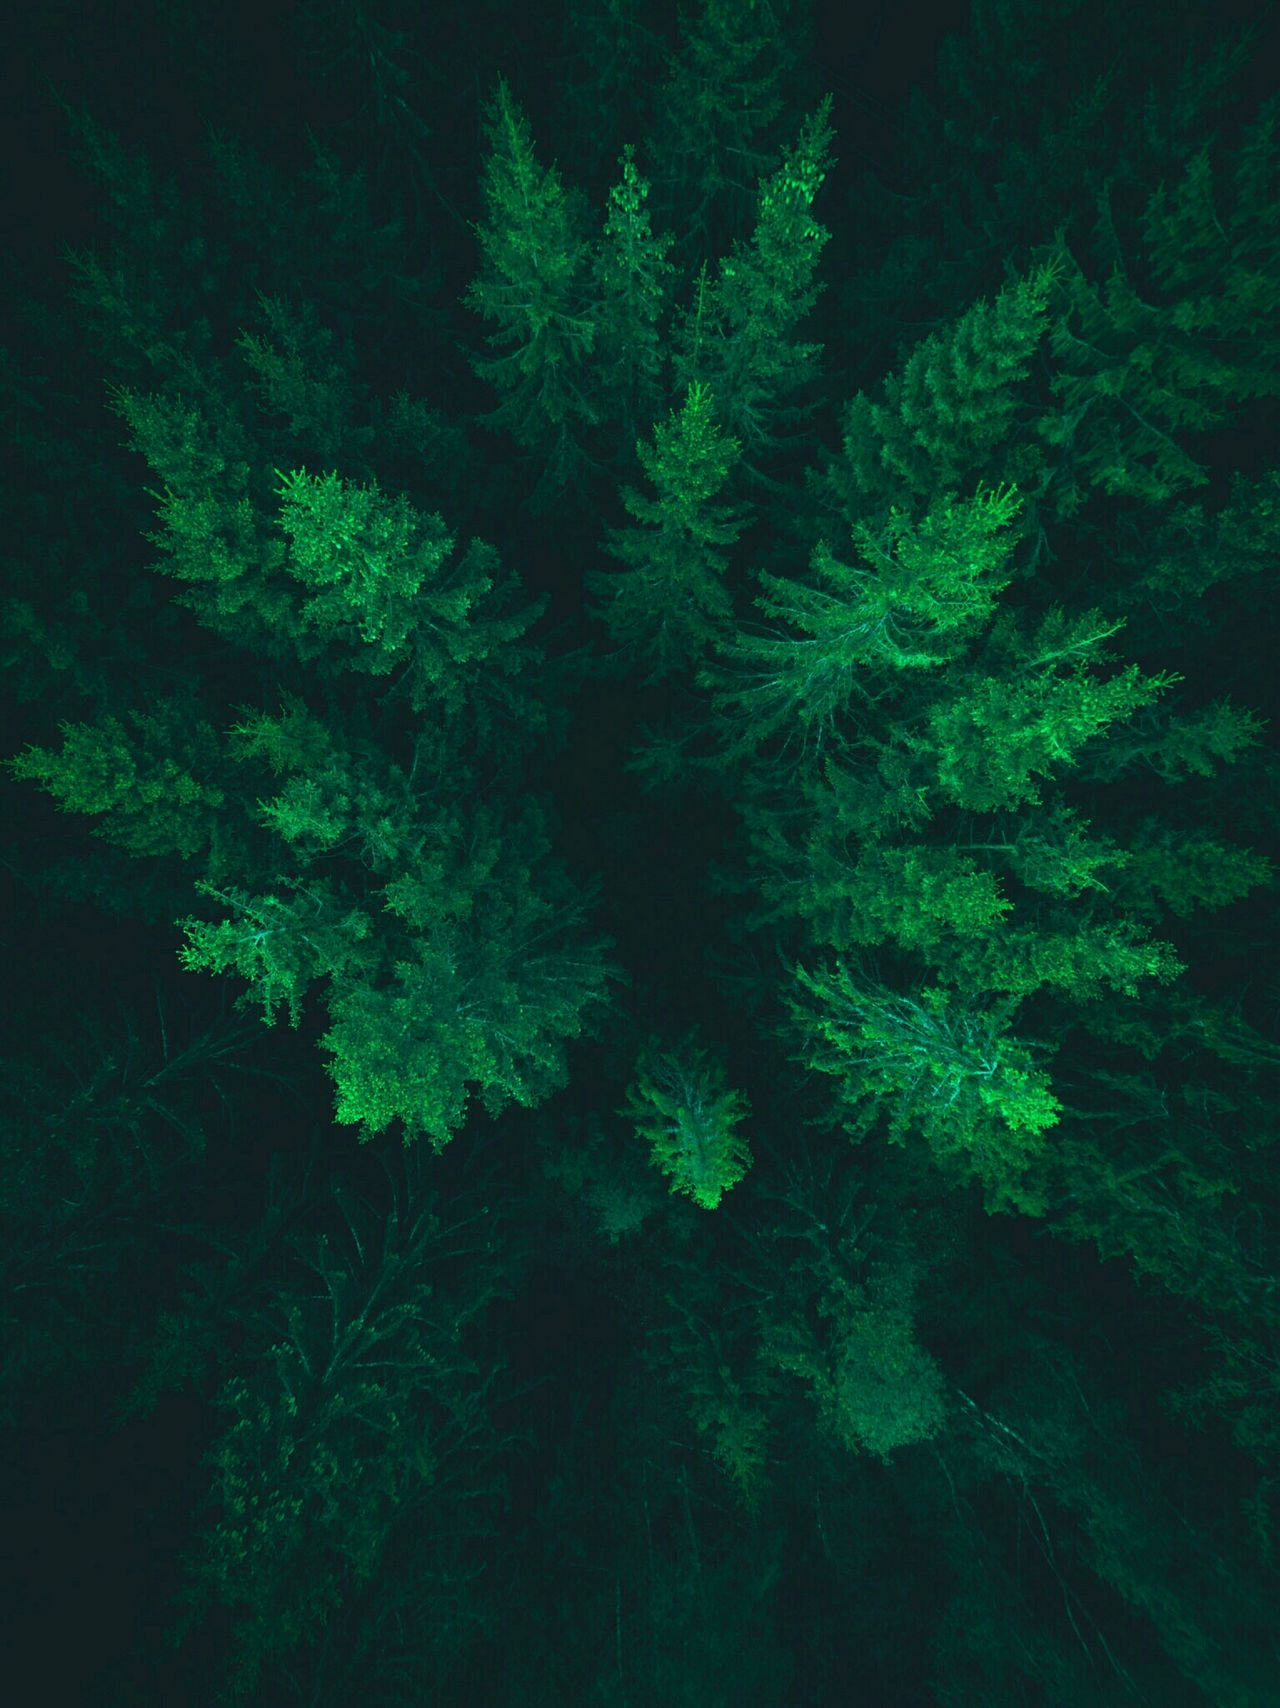 Come down to us. We will catch you. Fir Woods Forest Green Color Green Drone  Dronephotography Droneshot Drone Moments Drones Sweden Småland Växjö  Travel Color Of Life Colour Of Life A Bird's Eye View